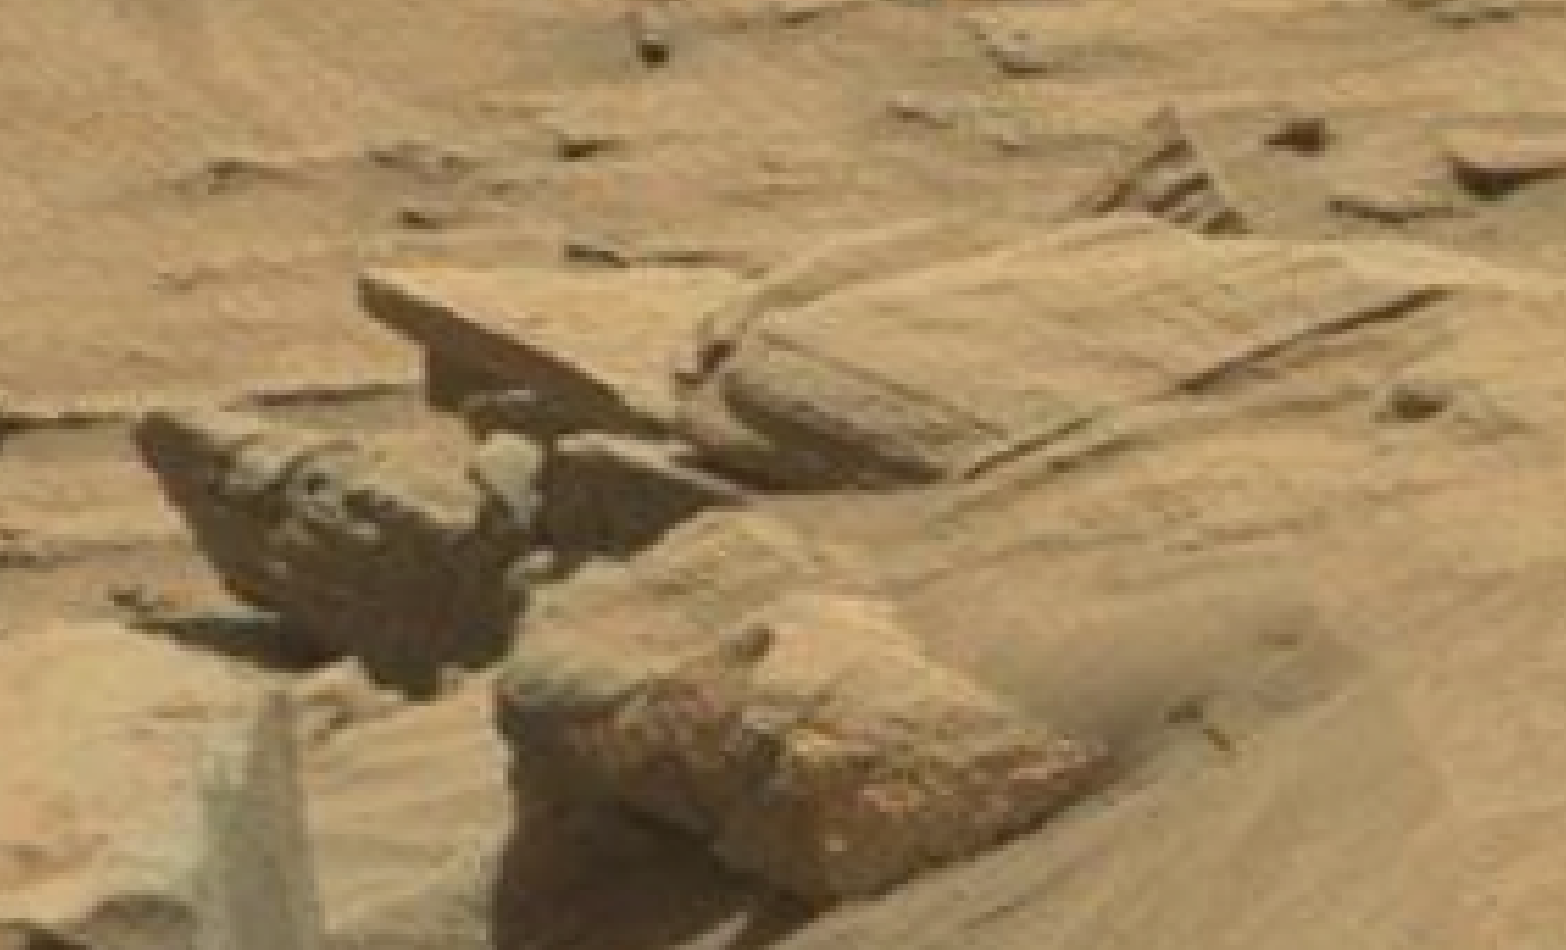 mars sol 1296 anomaly-artifacts 14 was life on mars